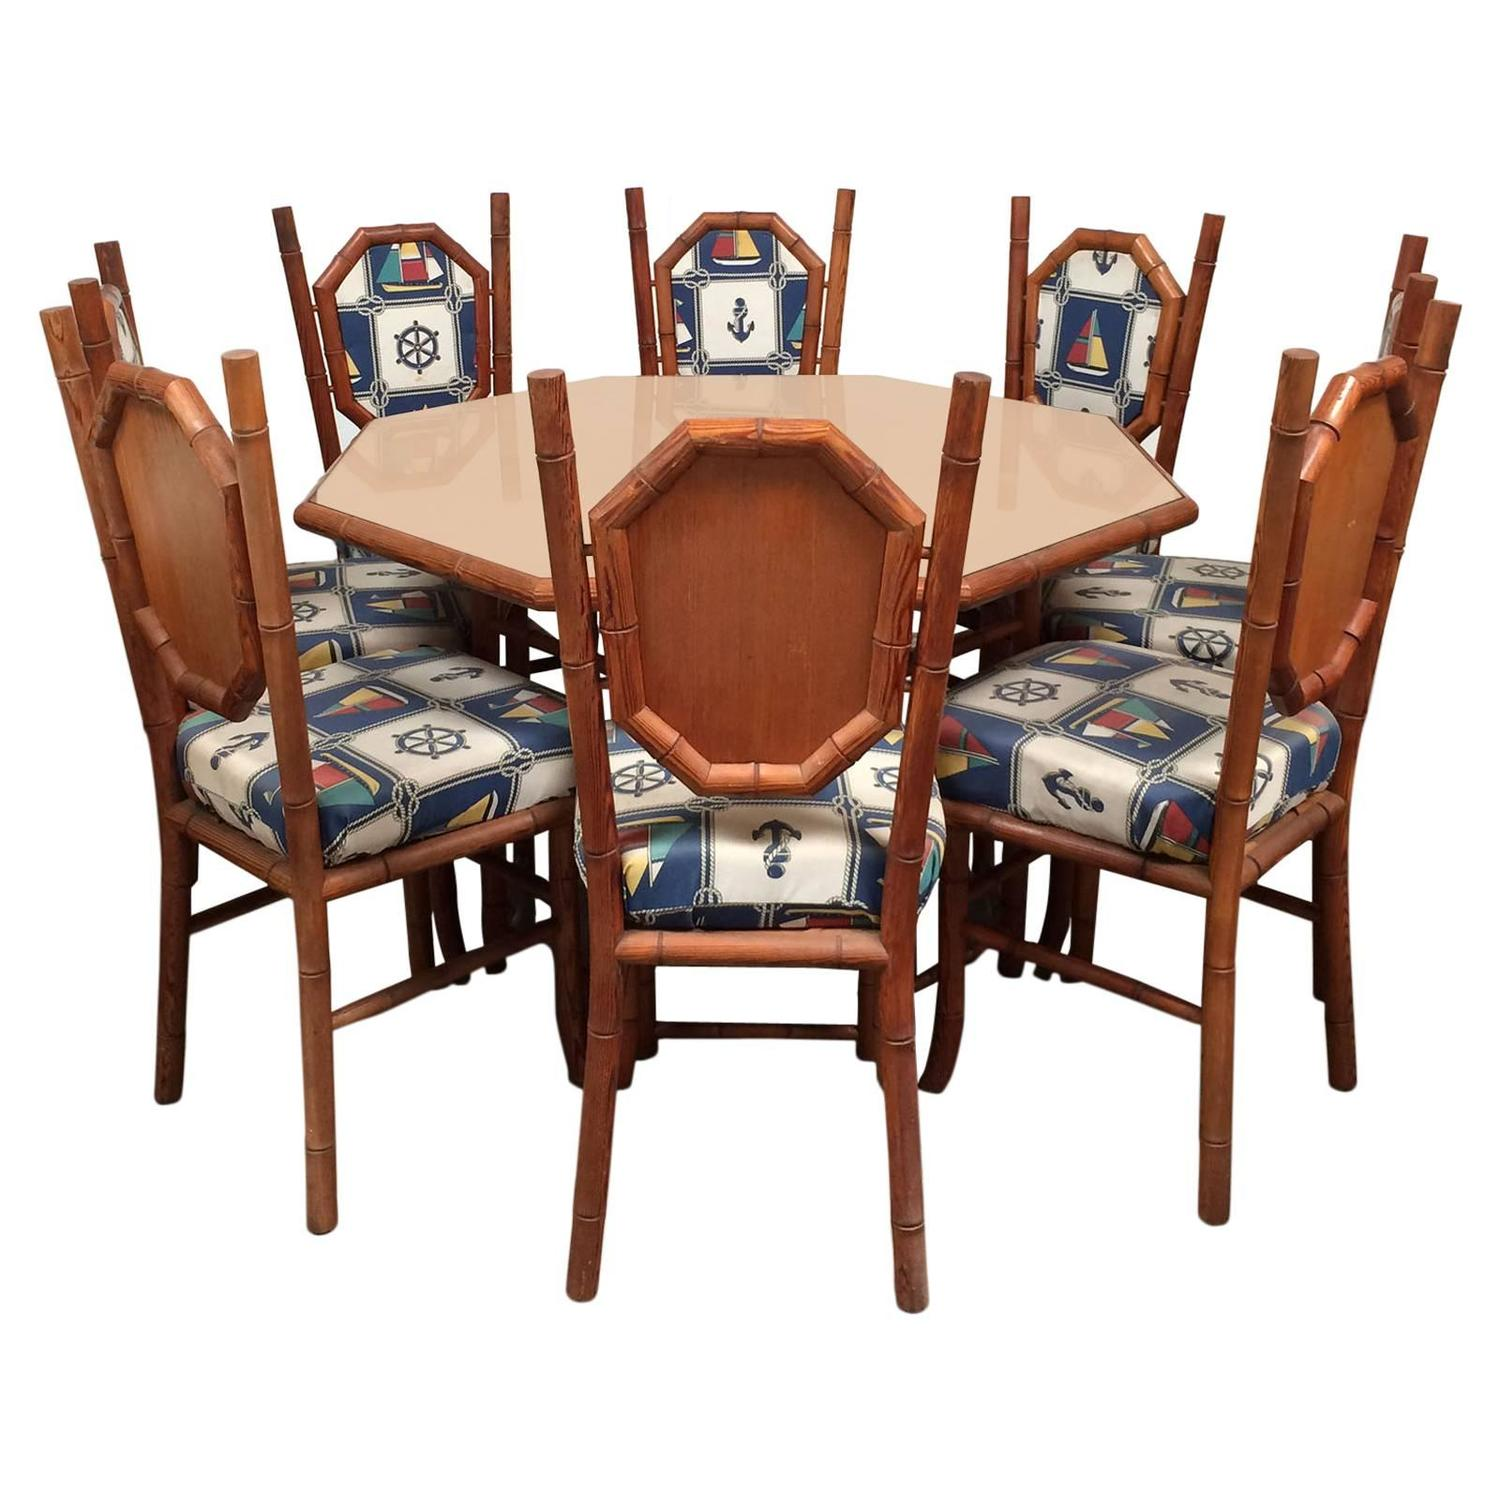 Nautical themed card table and chairs in red wood faux